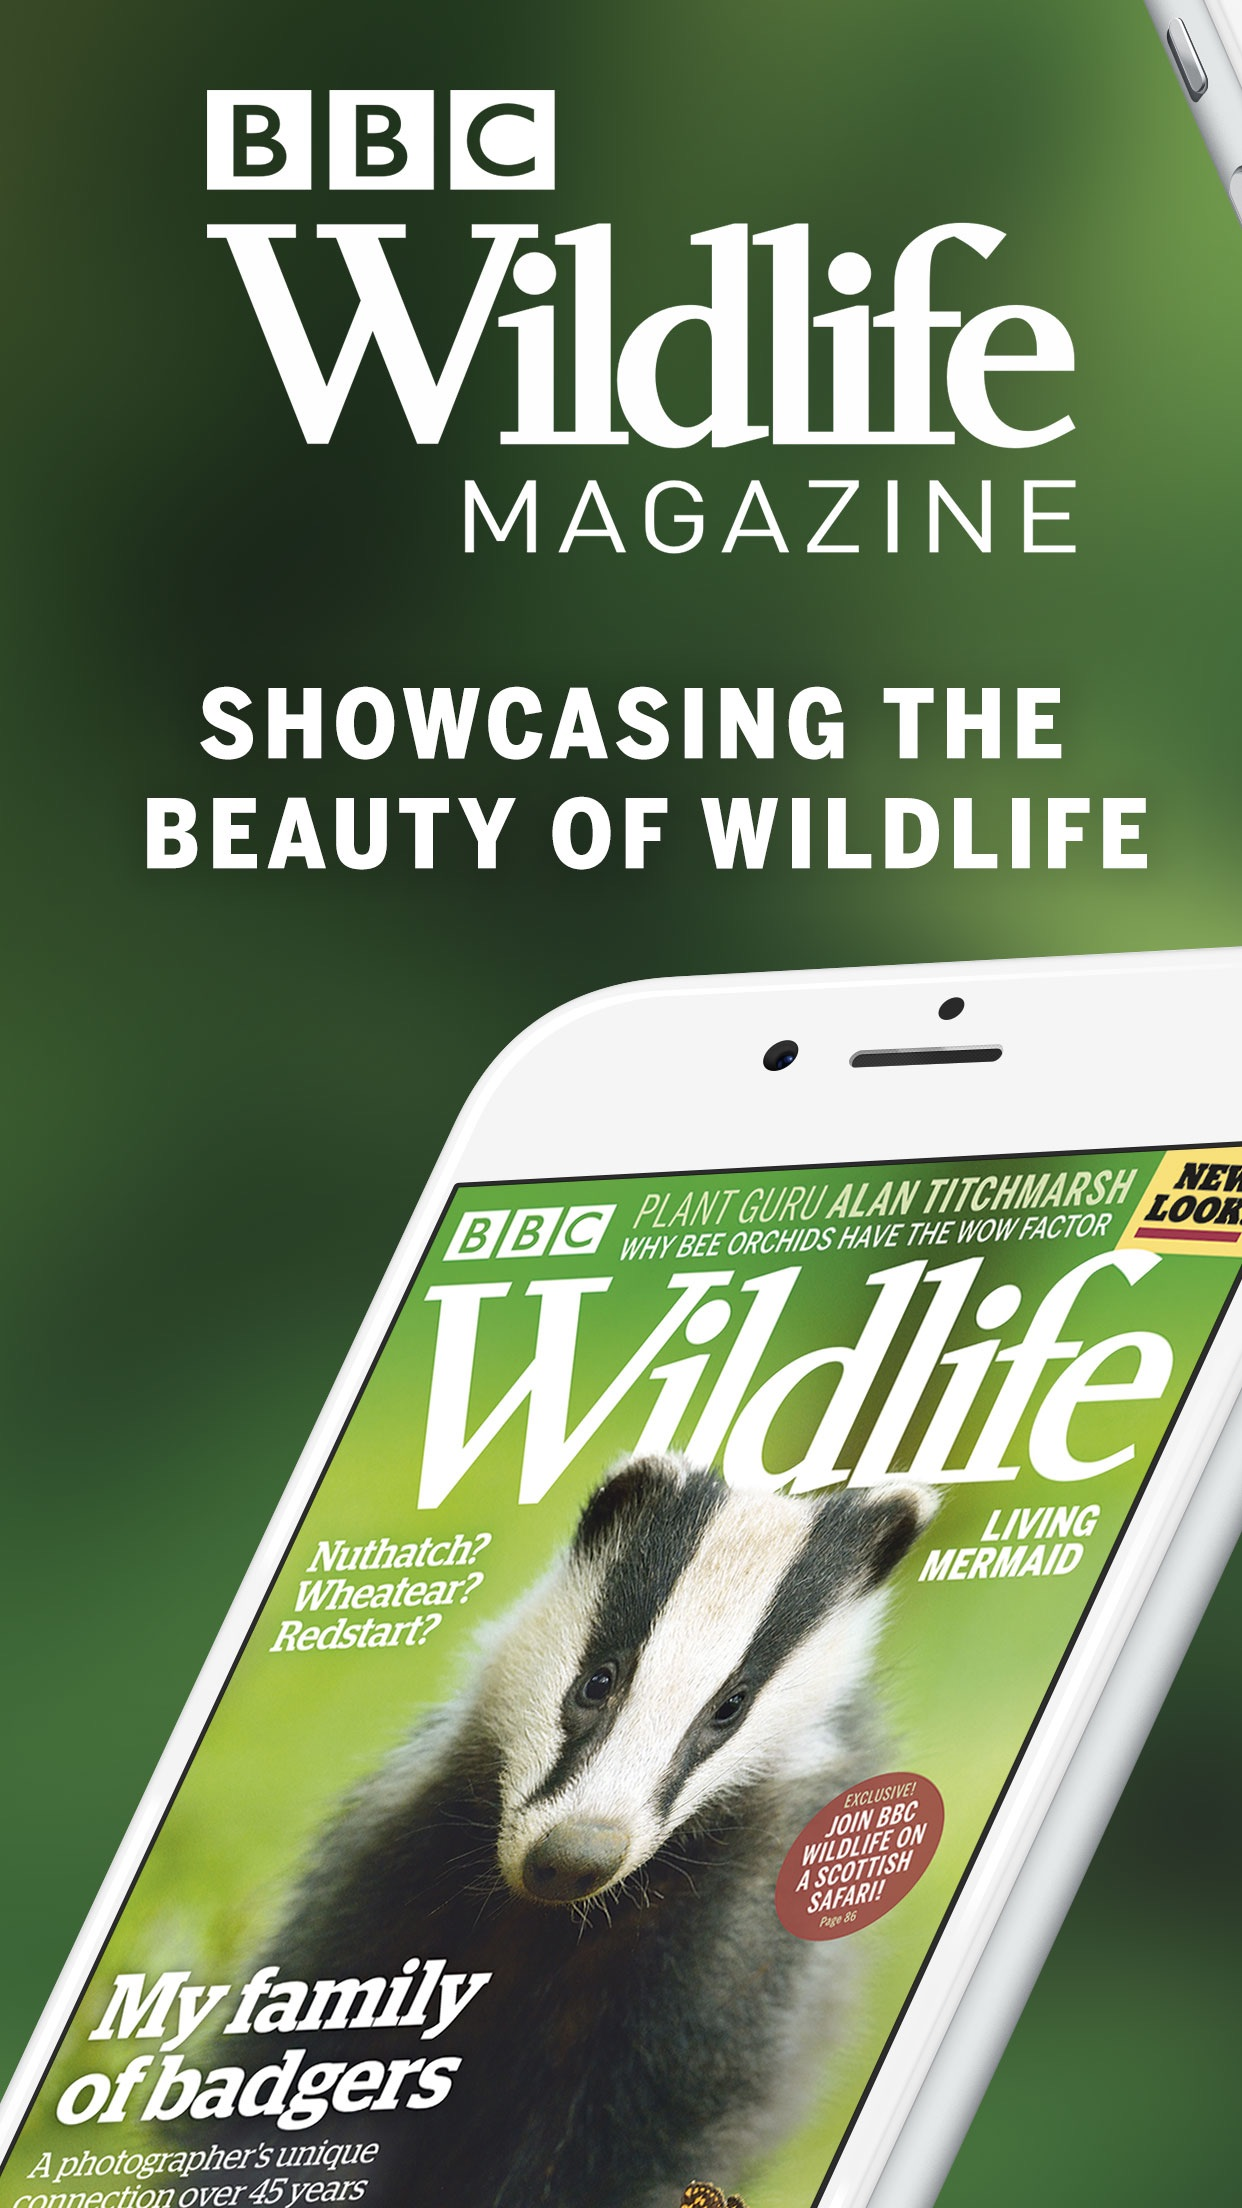 BBC Wildlife Magazine Screenshot